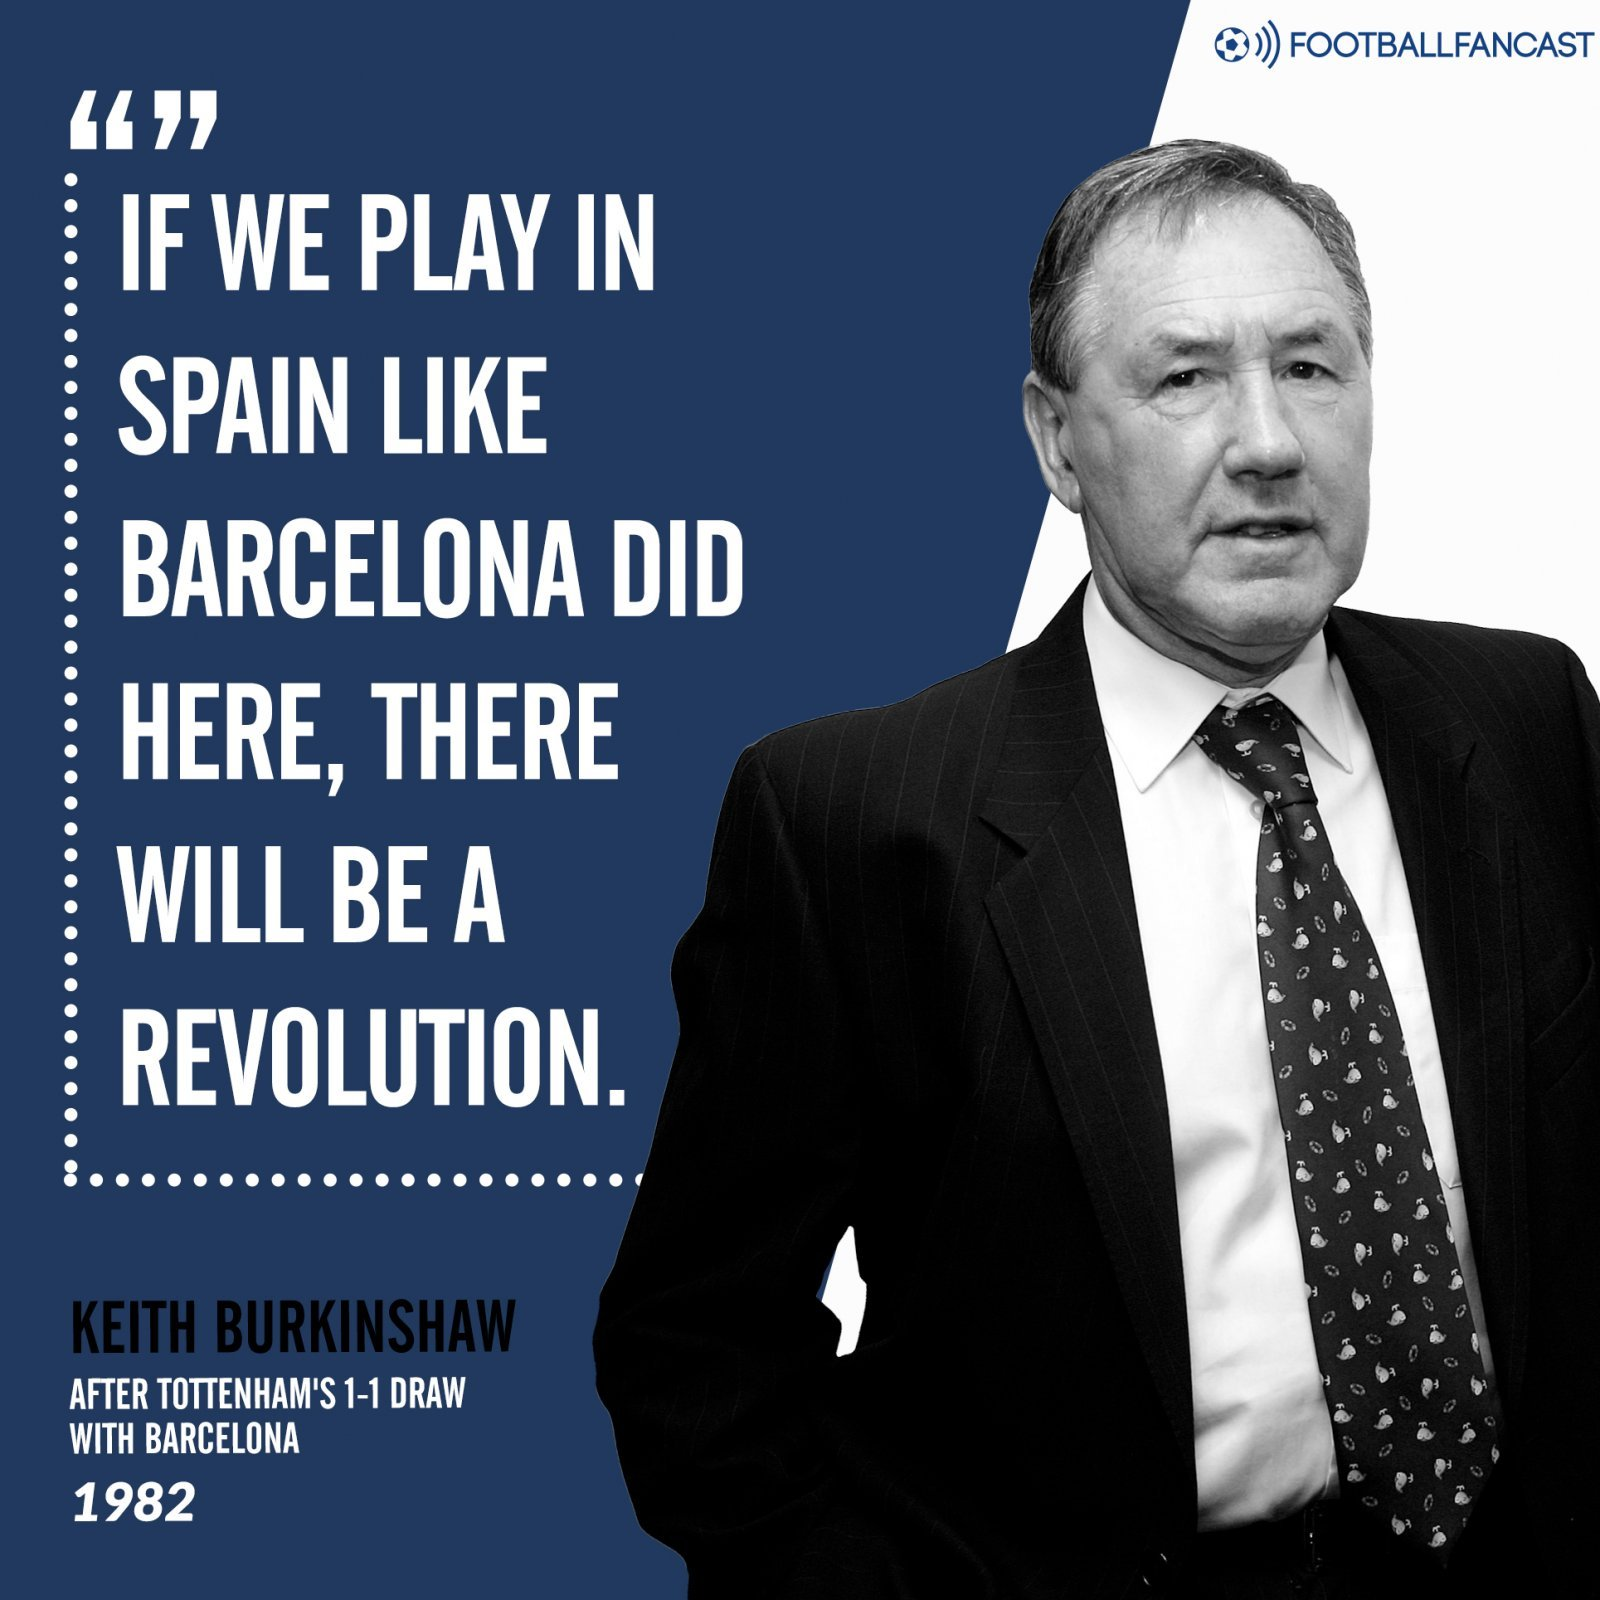 Keith Burkinshaw's comments on Barcelona's performance versus Spurs